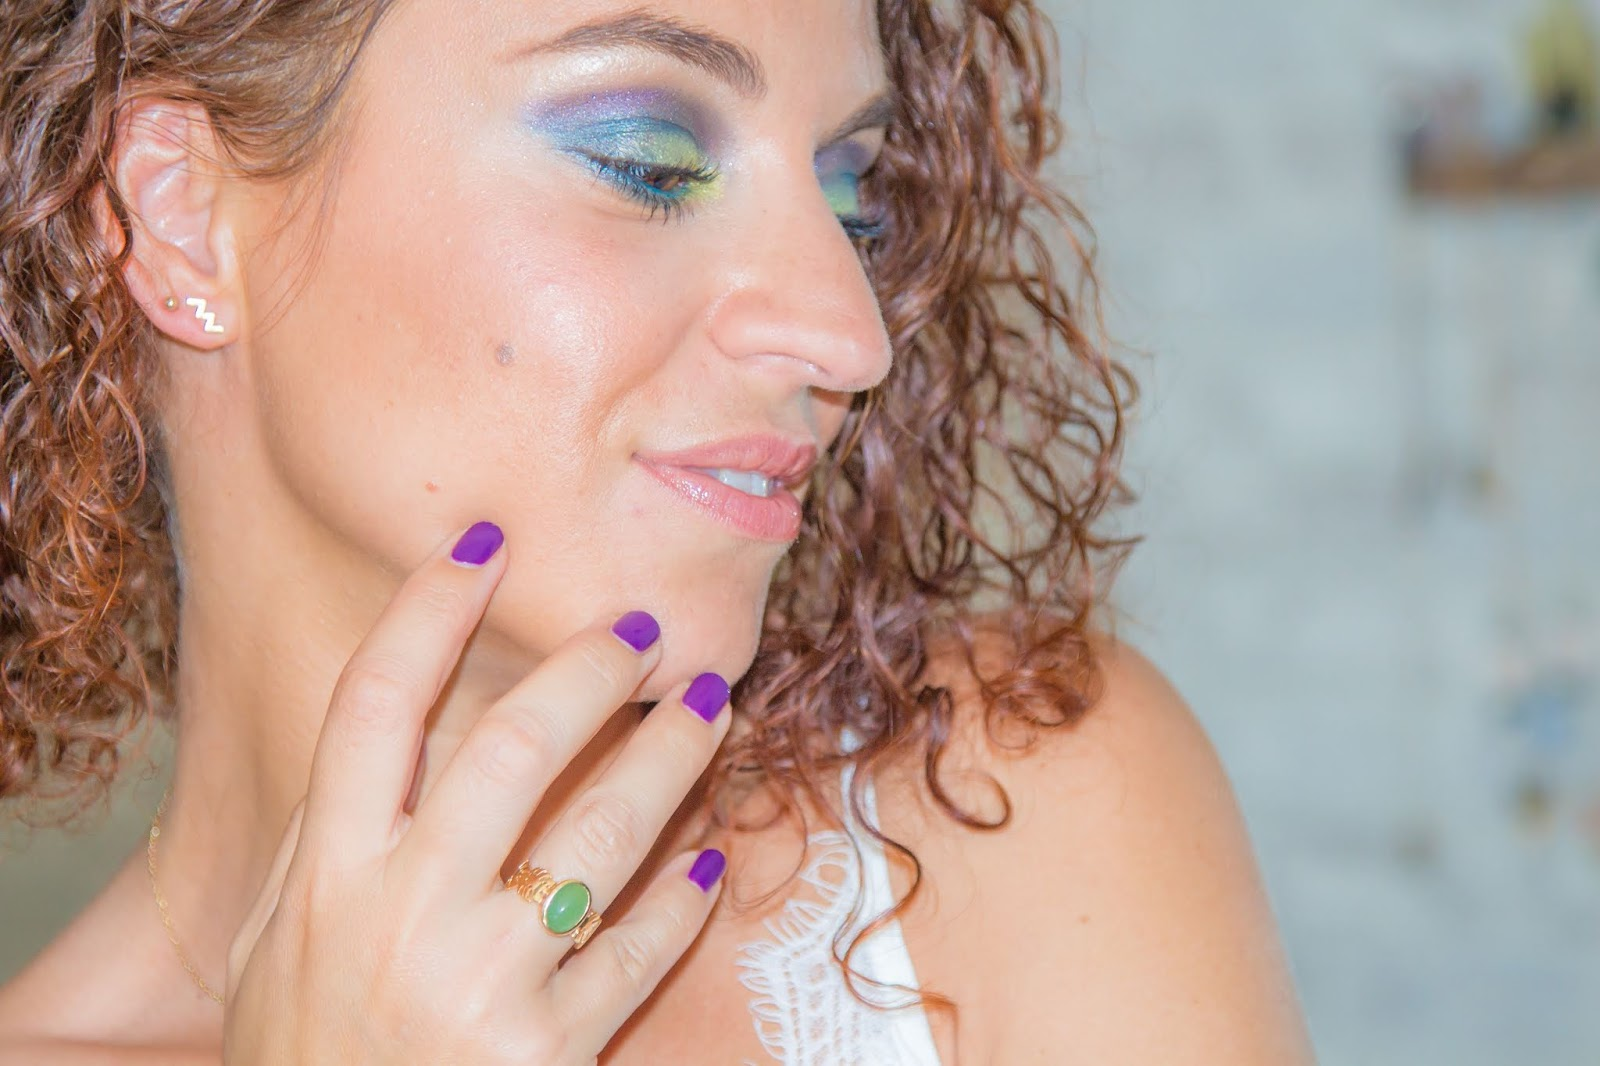 maquillage-estival-teal-vert-anis